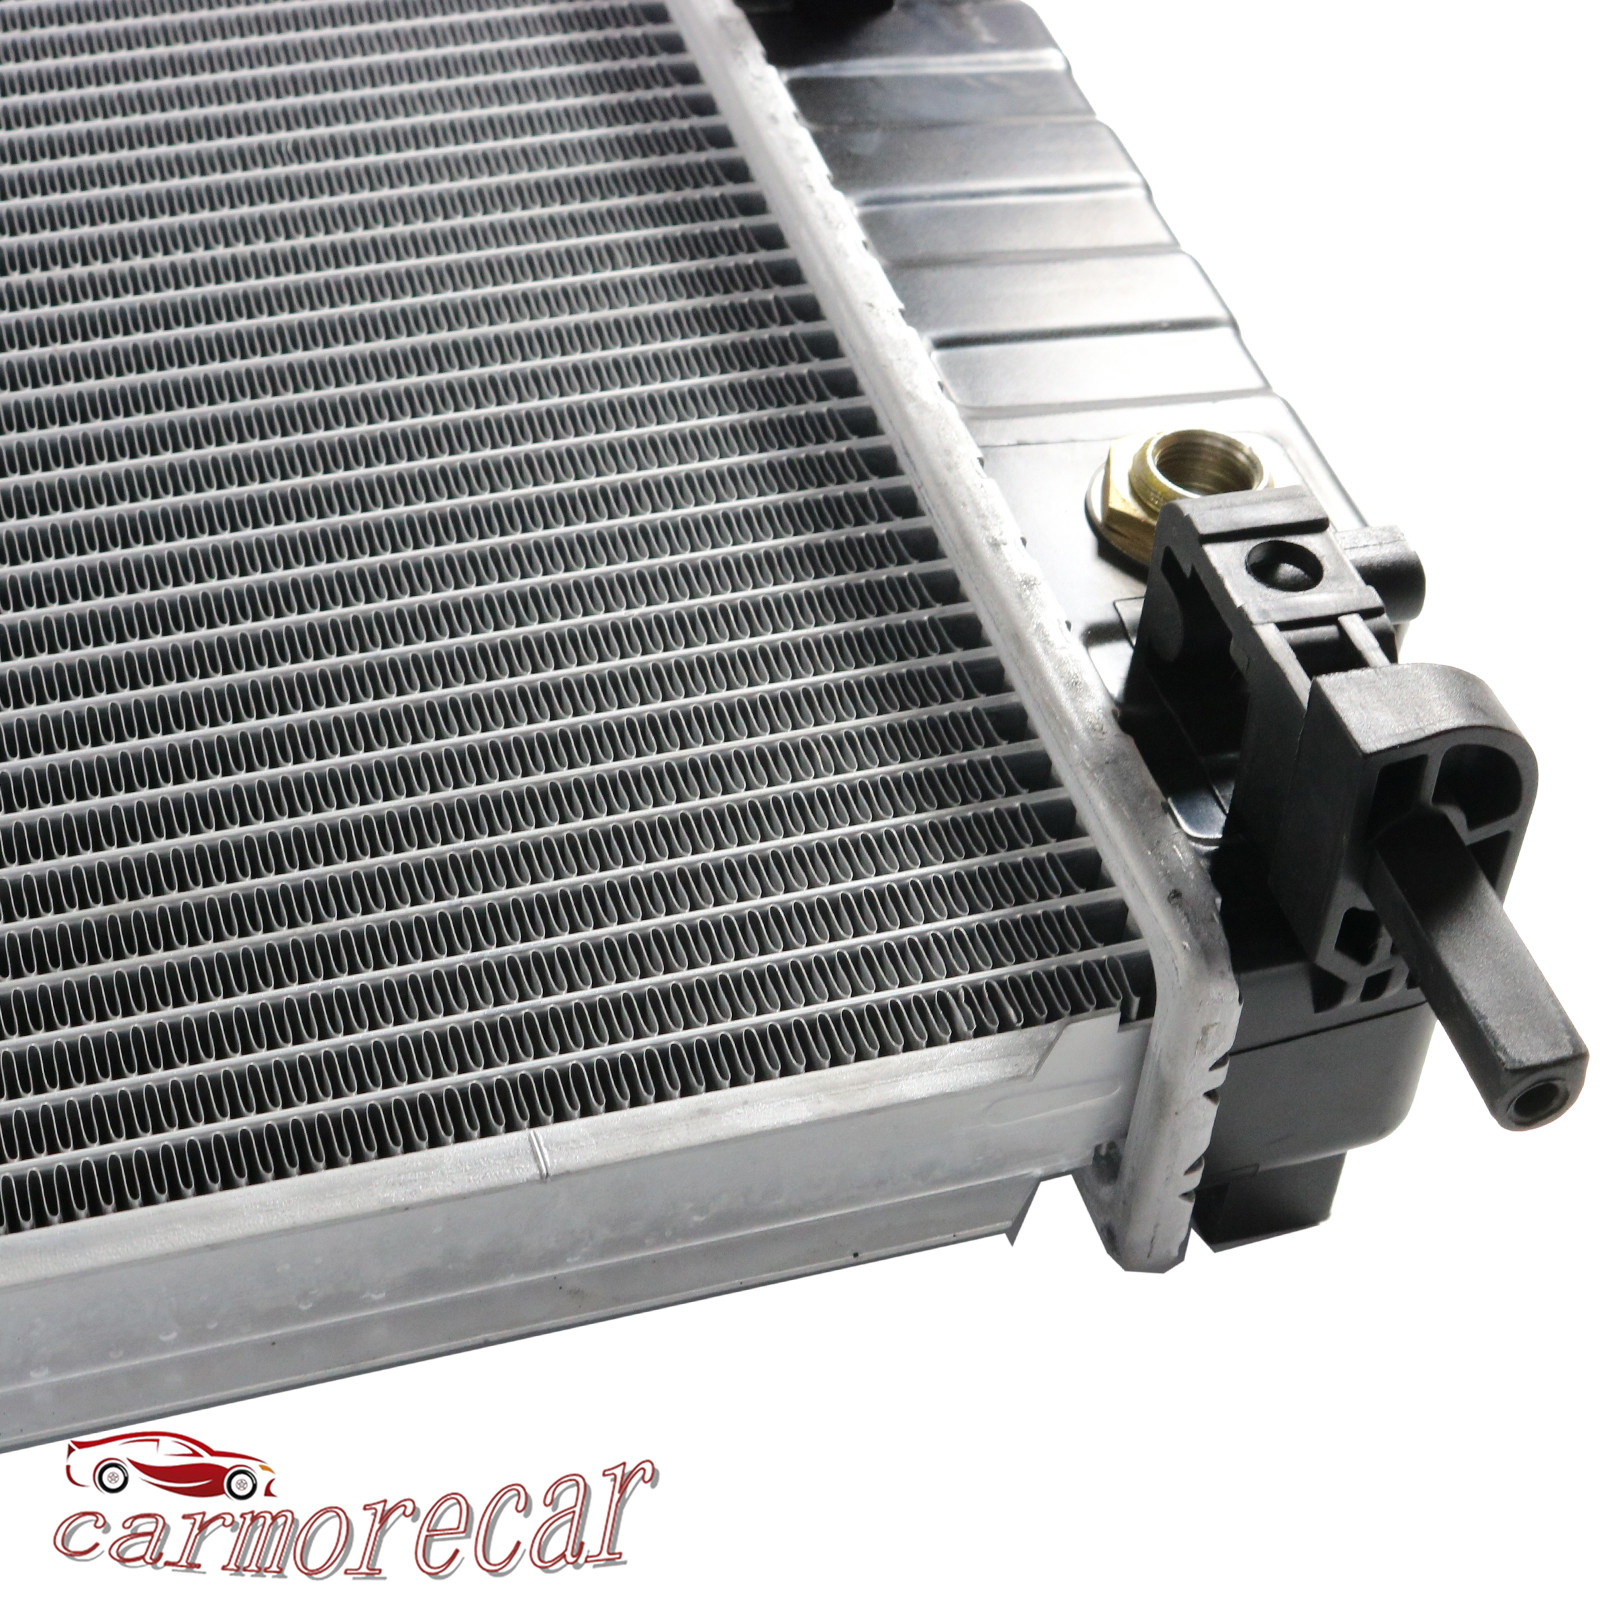 2294 Radiator fits Dodge Dakota 00-04 Durango 00-03 2.5 L4 3.7 3.9 V6 4.7 5.9 V8